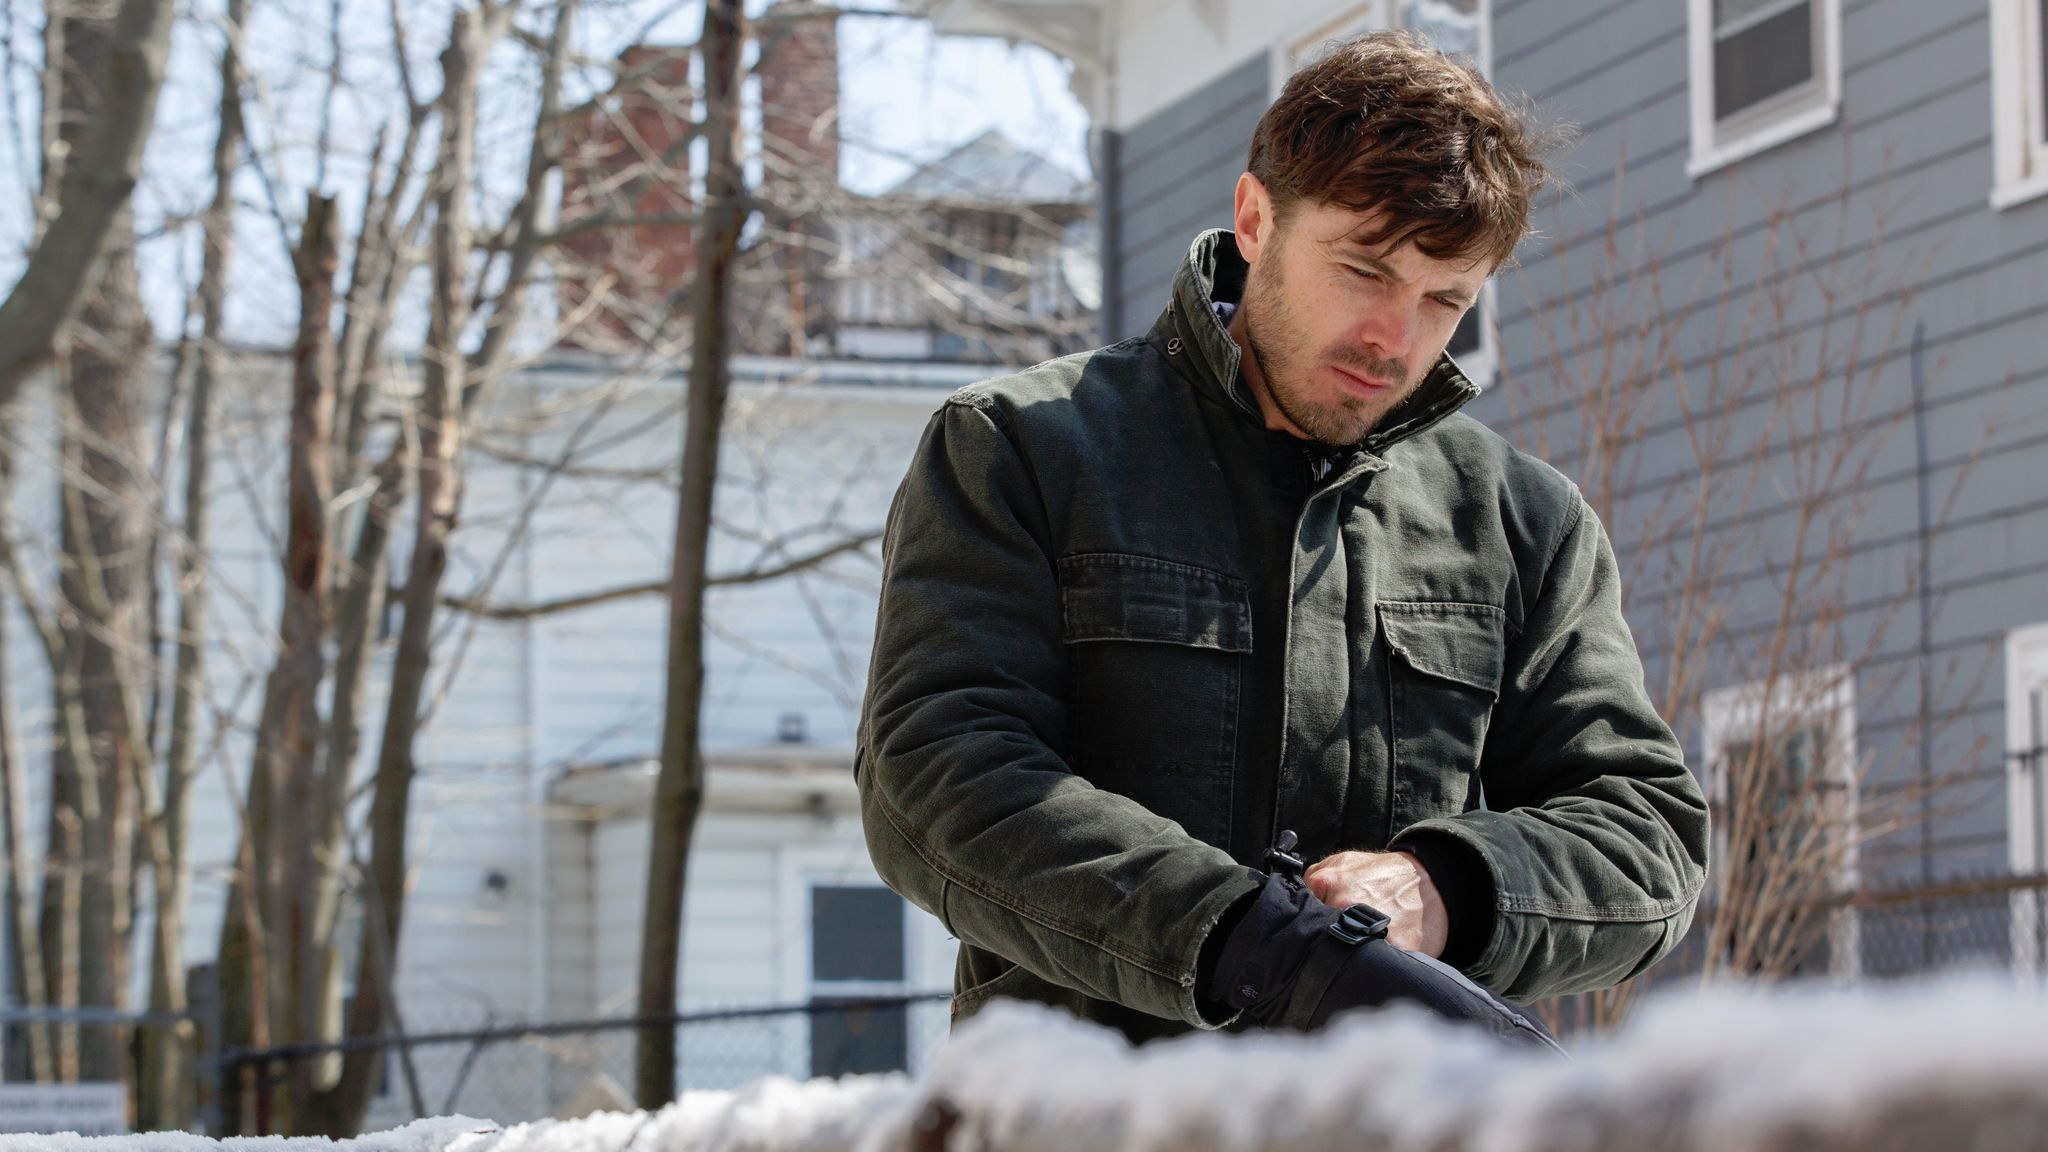 Oscar 2017, Casey Affleck vince come miglior attore protagonista con Manchester by the sea